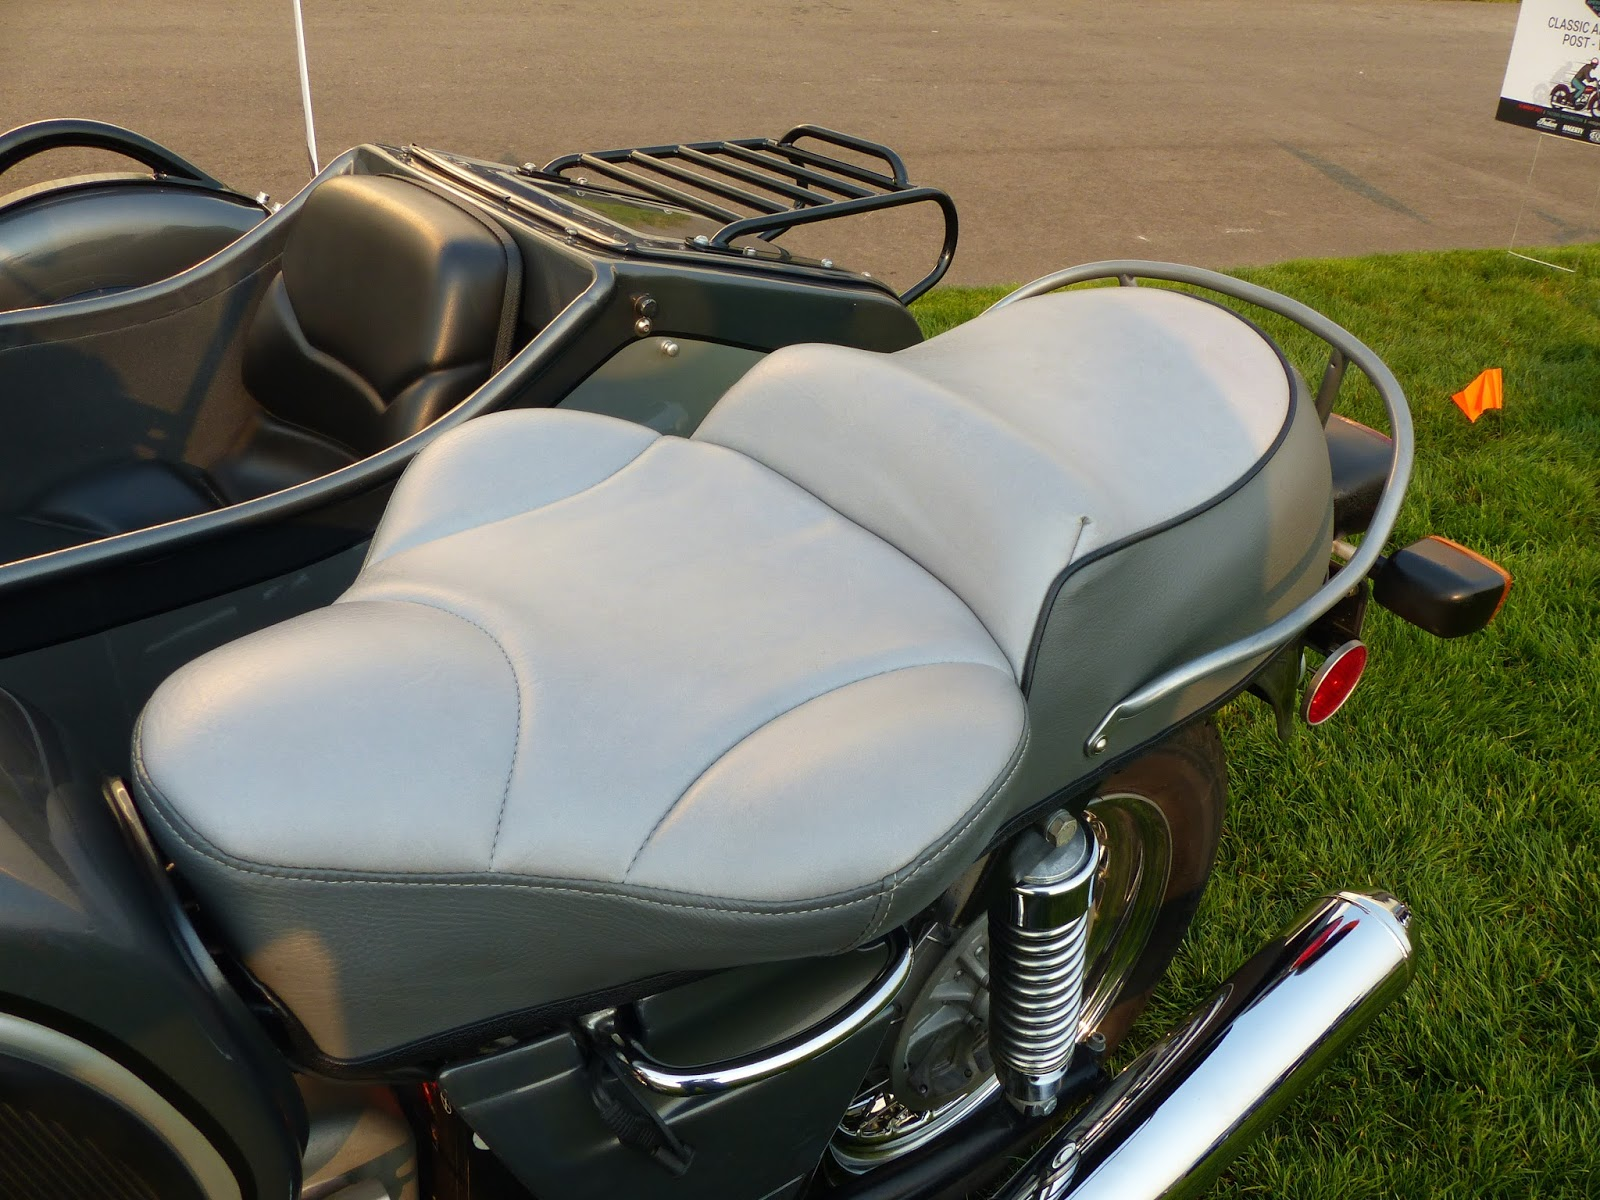 OldMotoDude: 1975 BMW R90 with Sidecar on display at